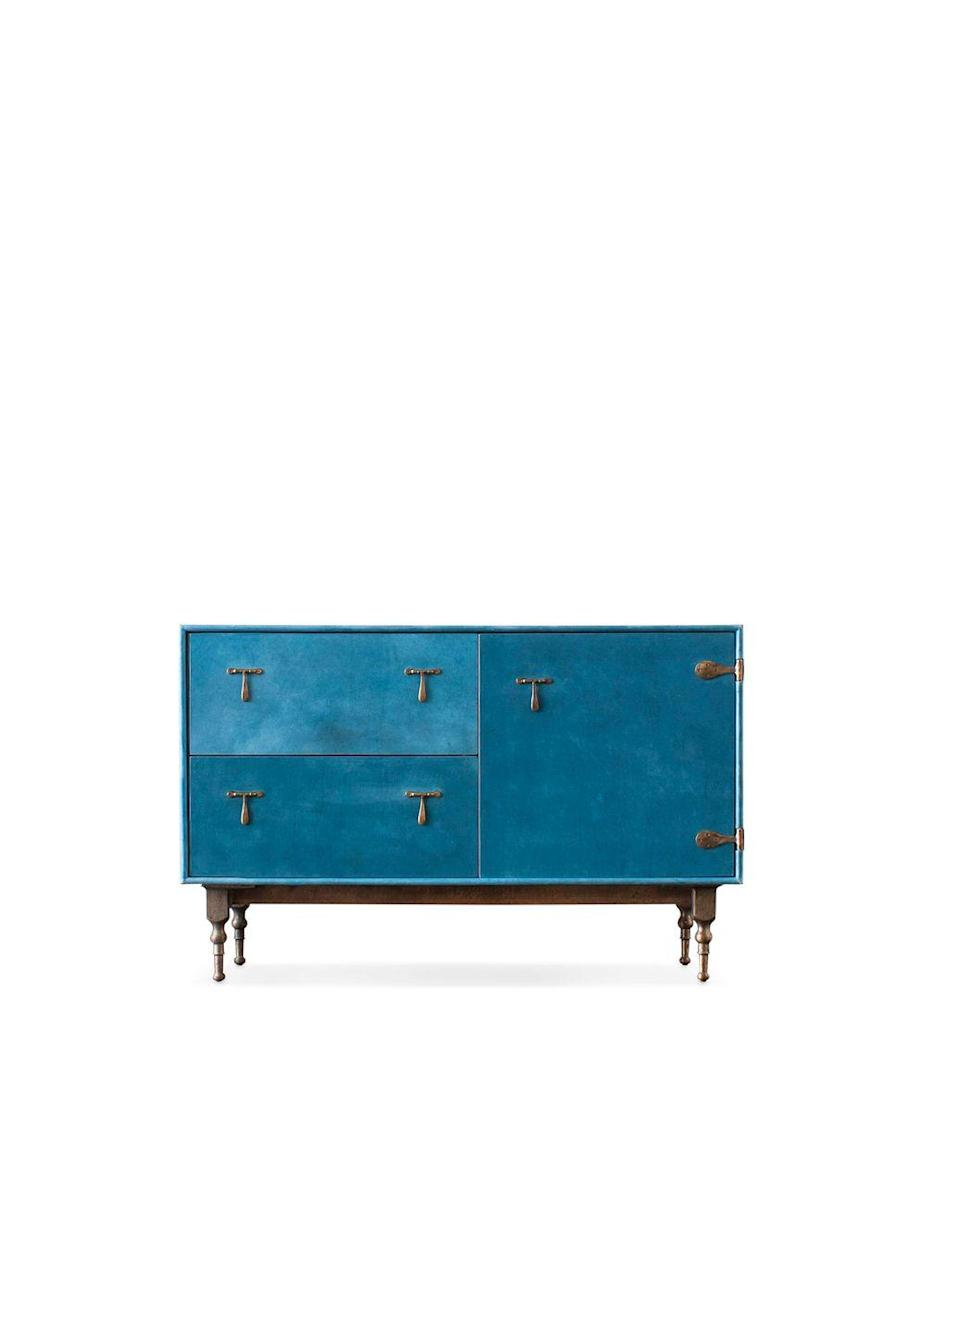 """<p> This is beautifully made, and though it stains easily, those stains look good. If I could afford to, I would buy everything from BDDW.</p><p><a class=""""link rapid-noclick-resp"""" href=""""https://bddw.com/furniture/storage/leather_credenza"""" rel=""""nofollow noopener"""" target=""""_blank"""" data-ylk=""""slk:BUY NOW"""">BUY NOW</a></p>"""